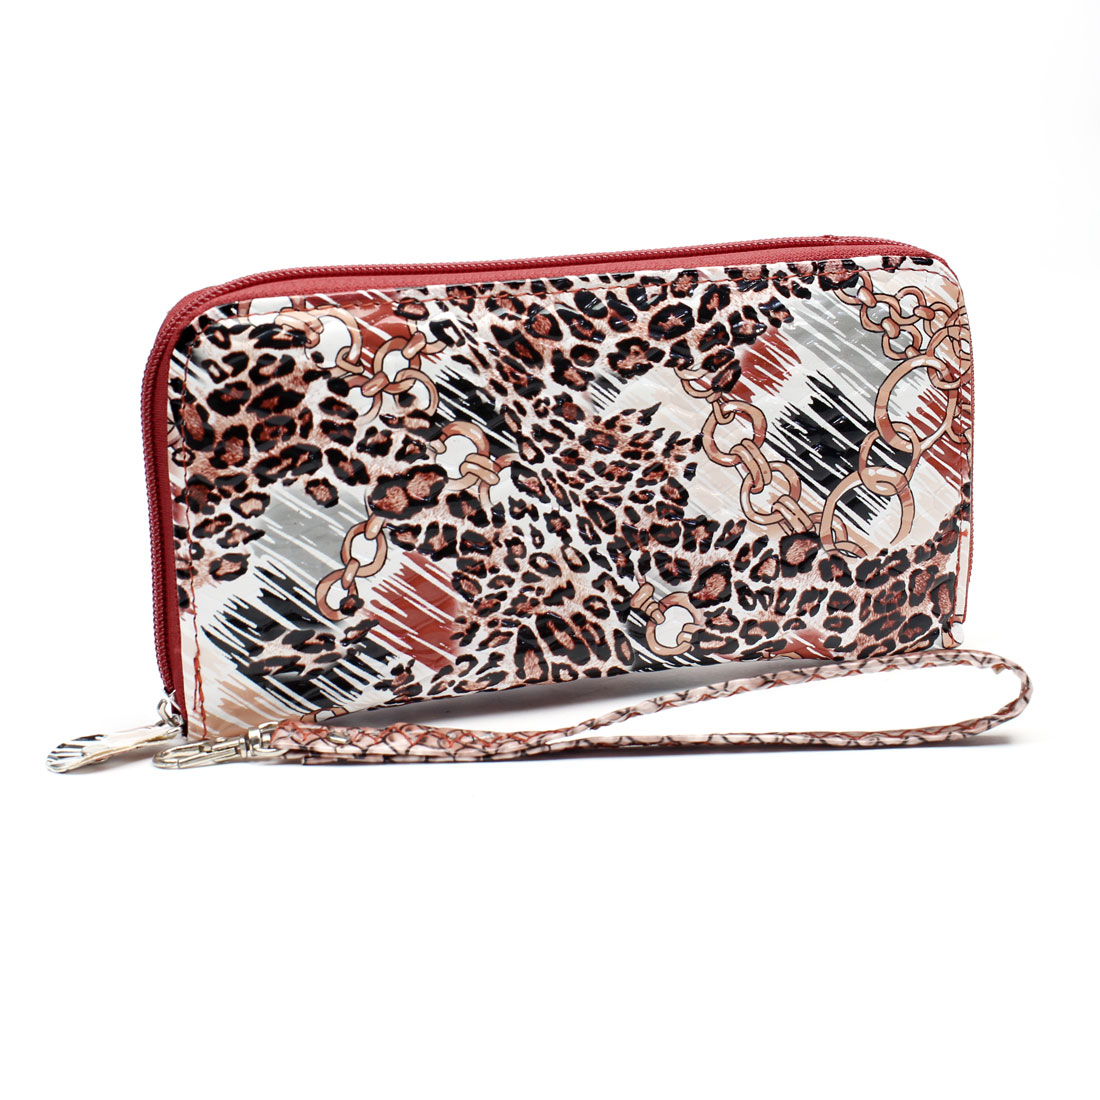 Carmine Leopard Bracelet Printed Zippered Wrist Purse Bag w Strap for Woman